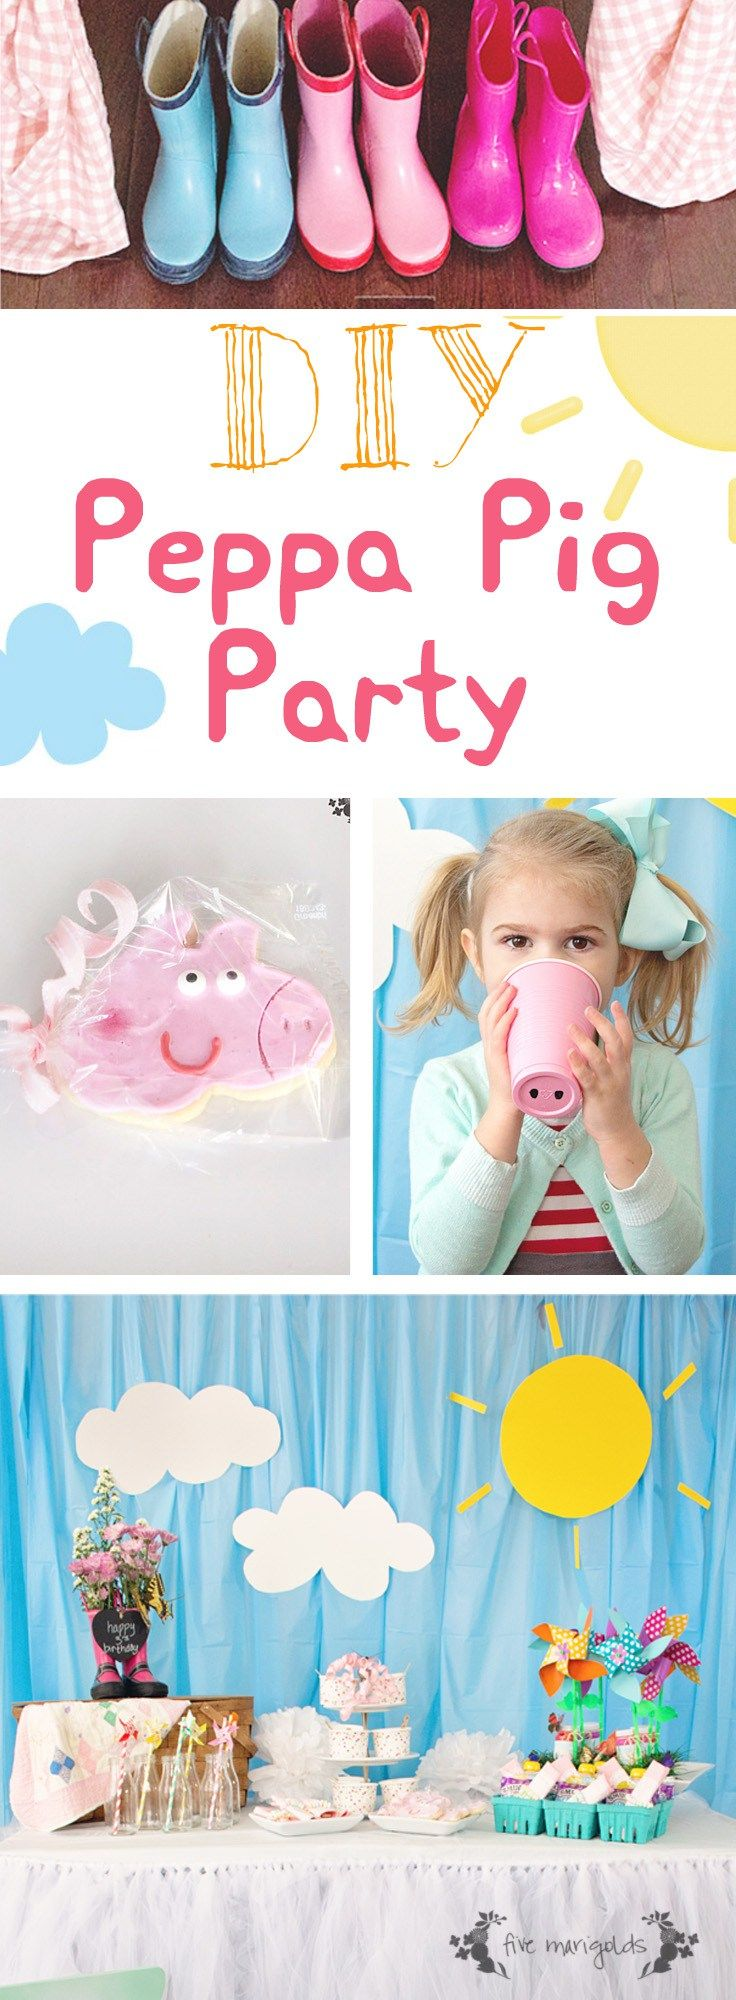 best images about birthdays on pinterest football tea parties